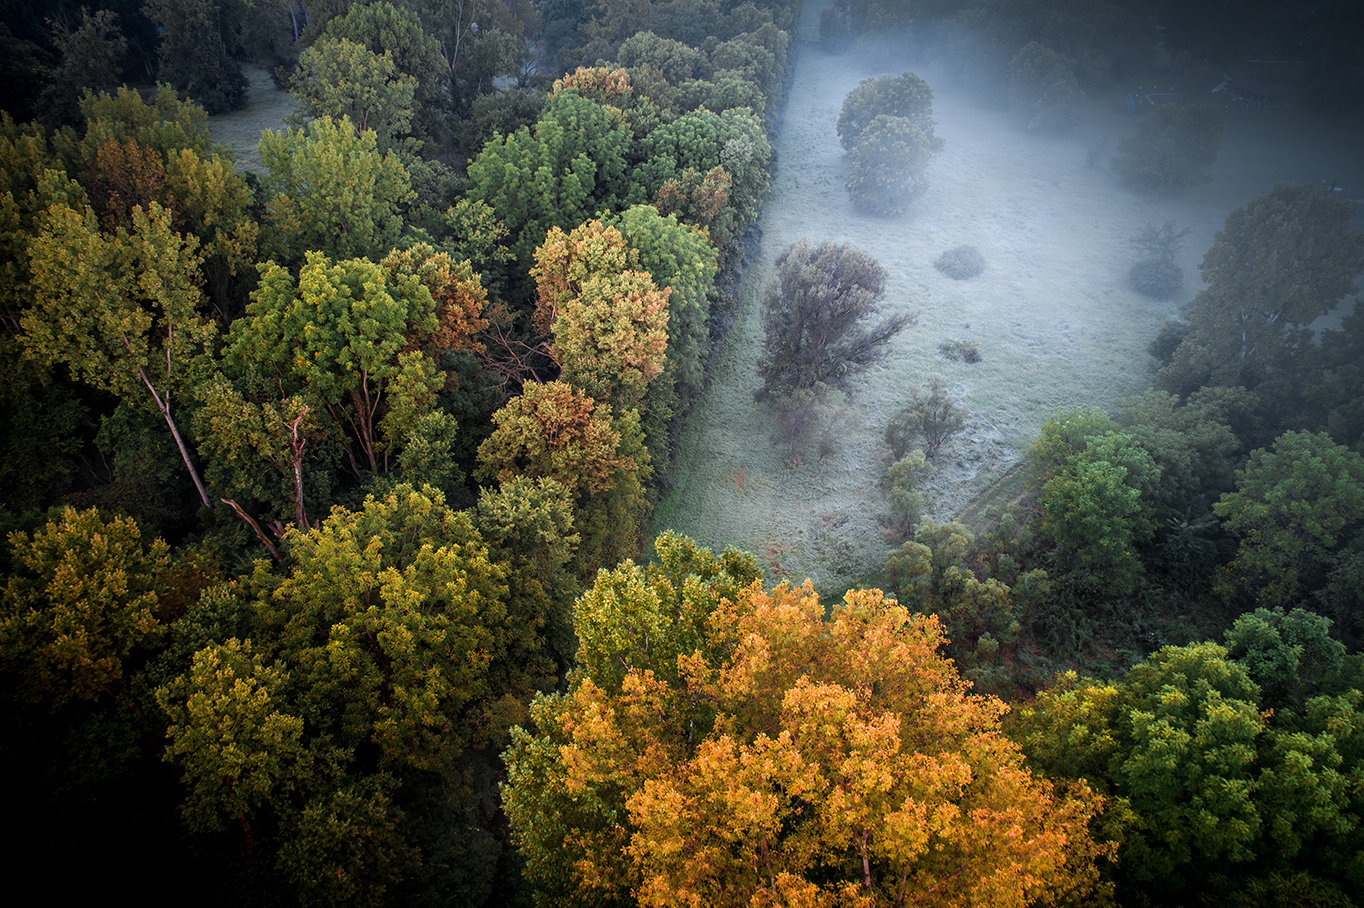 Autumn beginning to show signs in the trees on a foggy morning